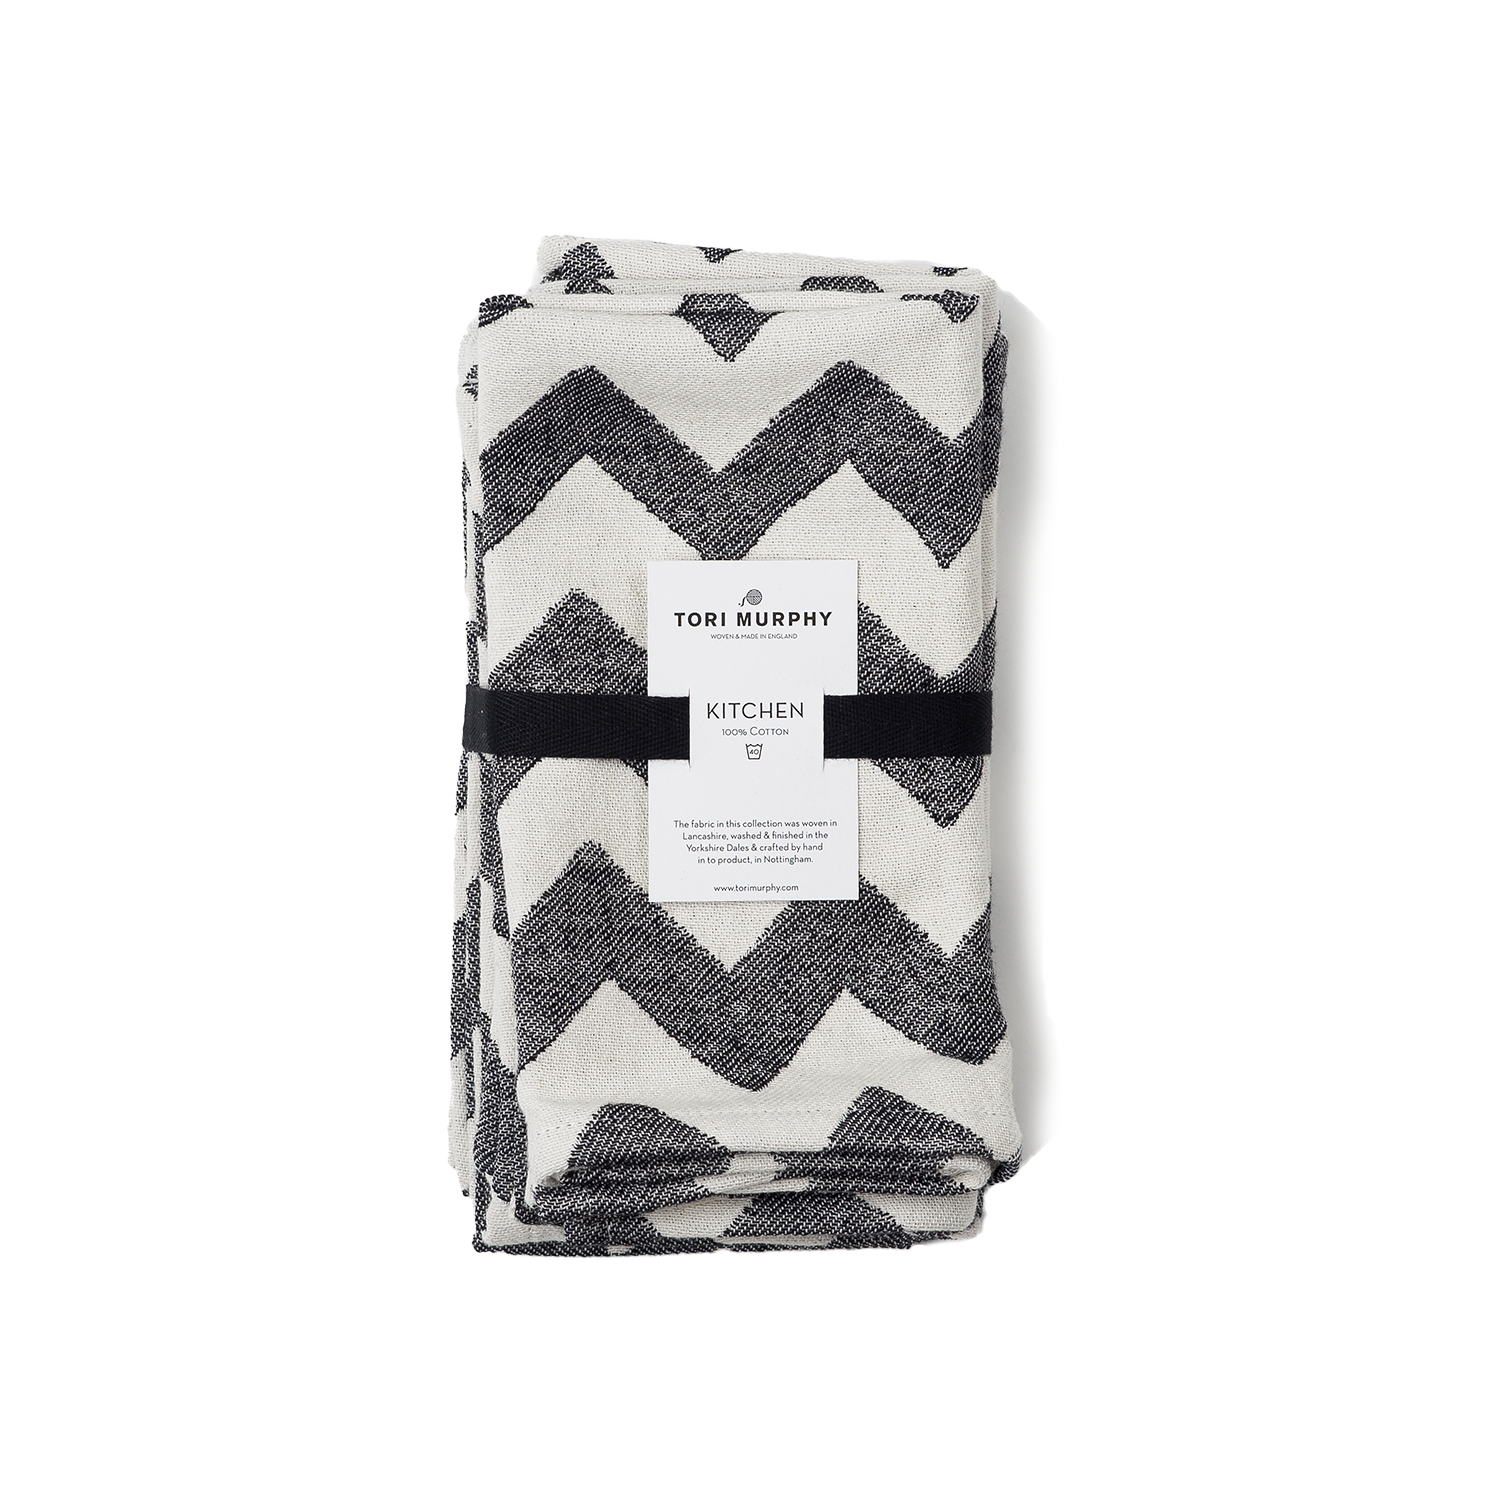 100% Cotton Napkin pack of 4 | Chevy by Tori Murphy Ltd.